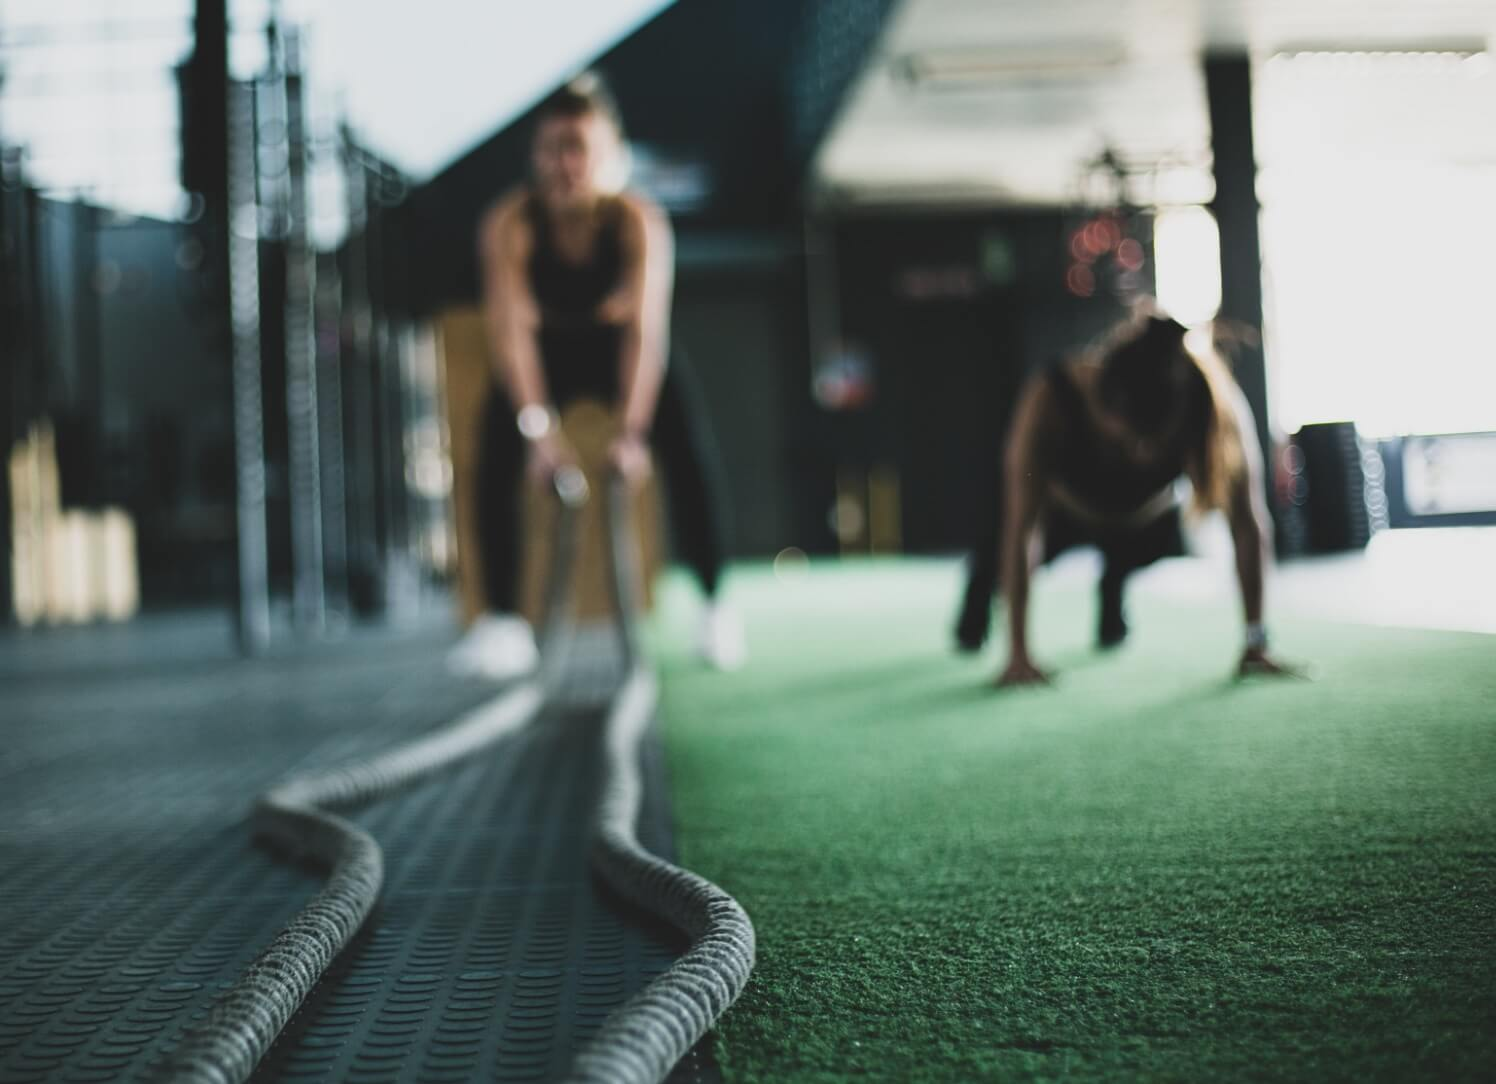 Two women doing gym workout, push ups and battle ropes